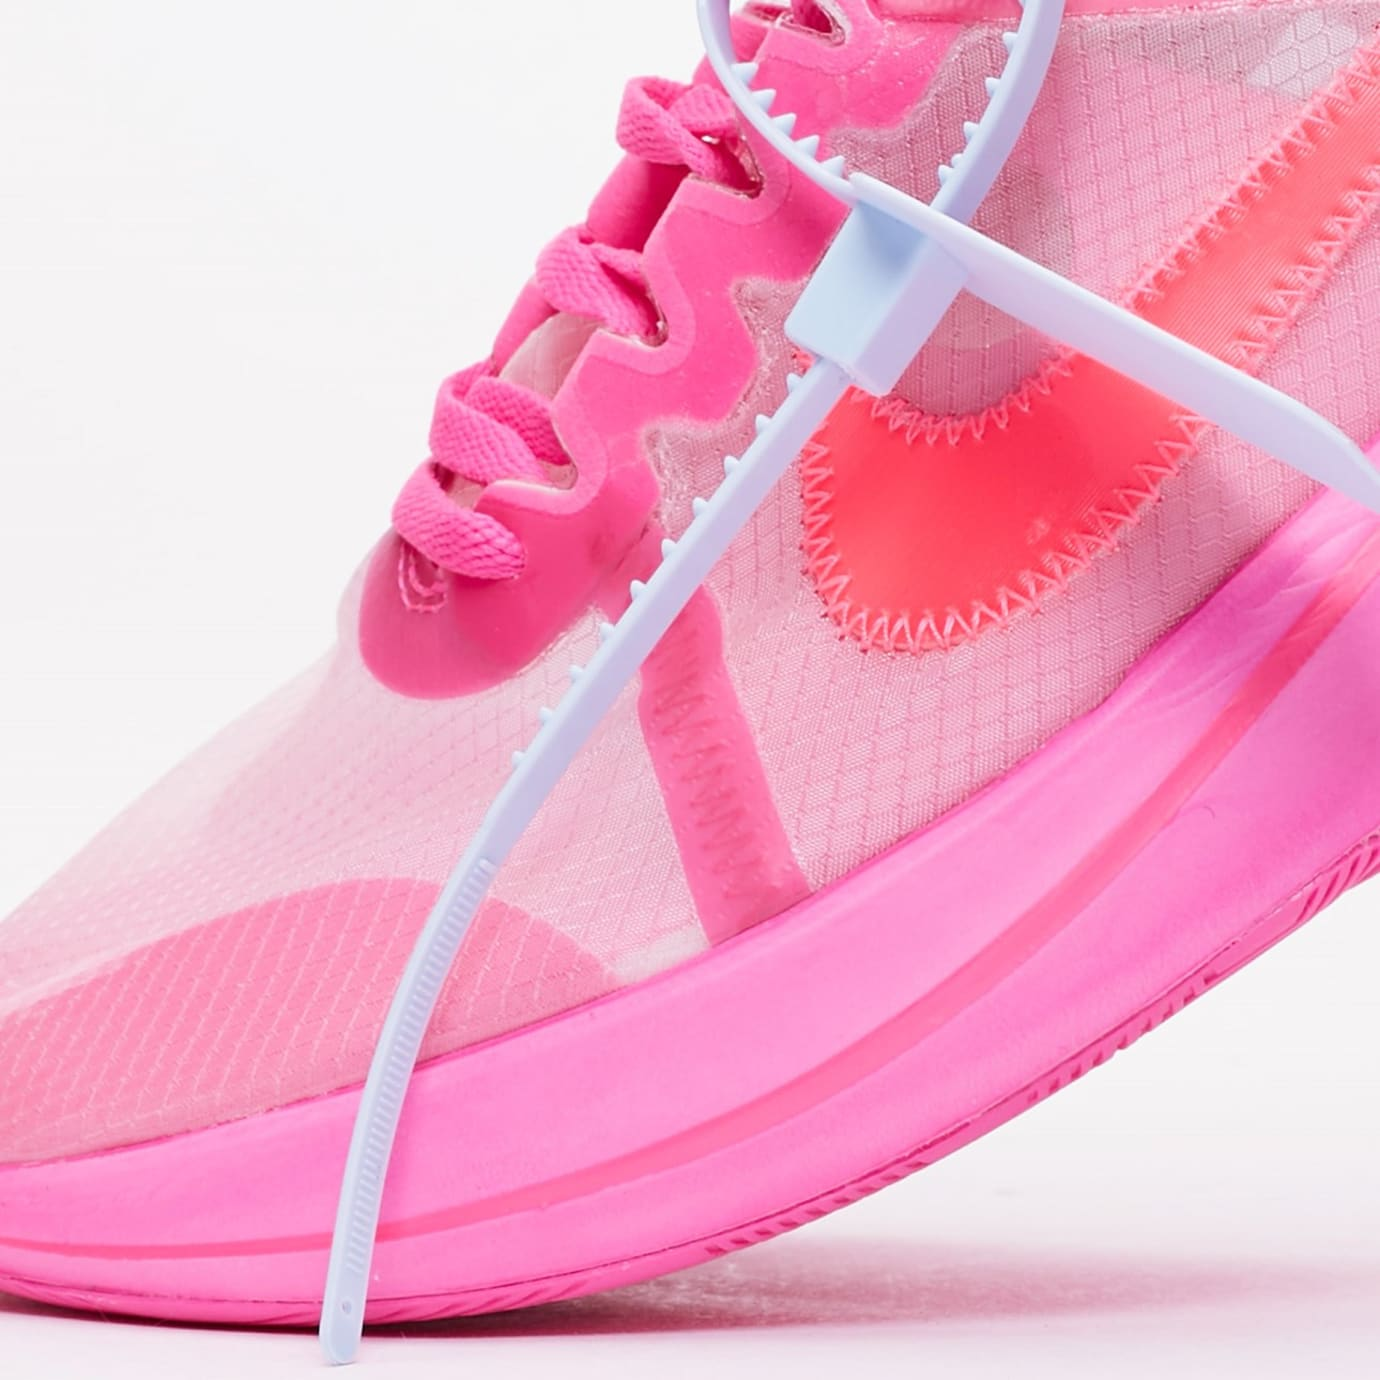 best loved f3000 a55fa Image via Sneakersnstuff Off-White x Nike Zoom Fly SP AJ4588-600  Tulip  Pink Racer